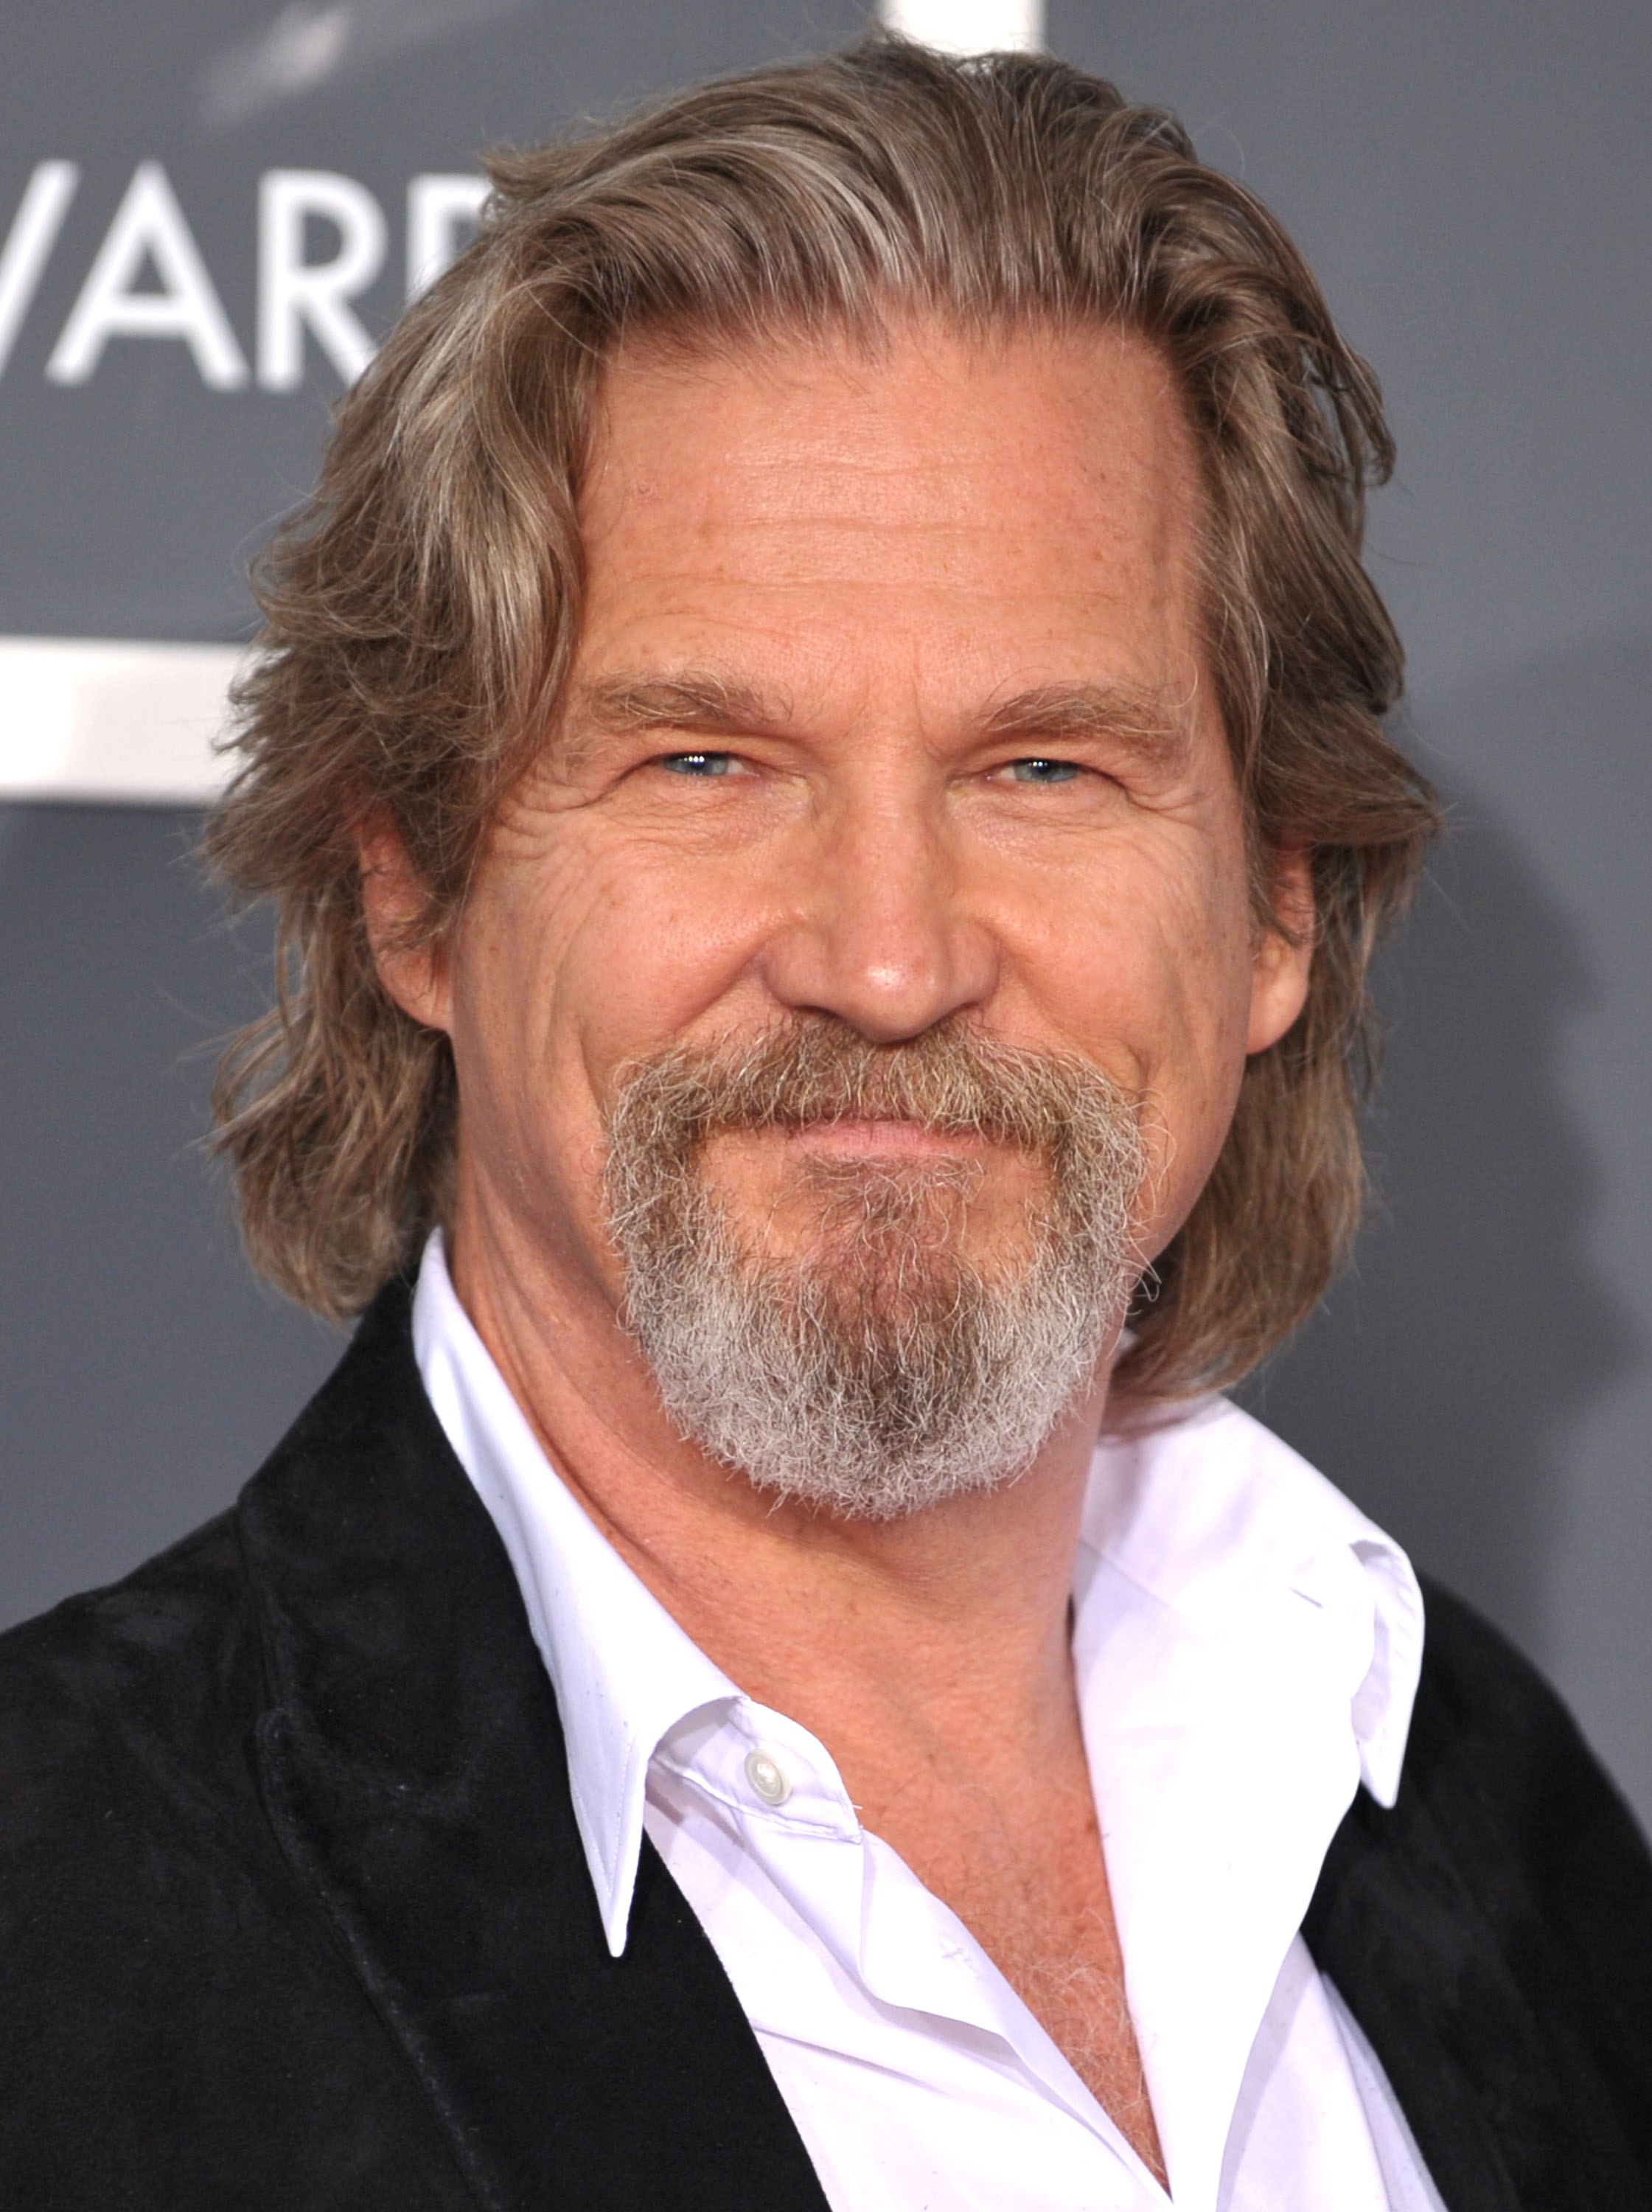 Jeff Bridges Wif HD Wallpaper Background Images 2241x3000